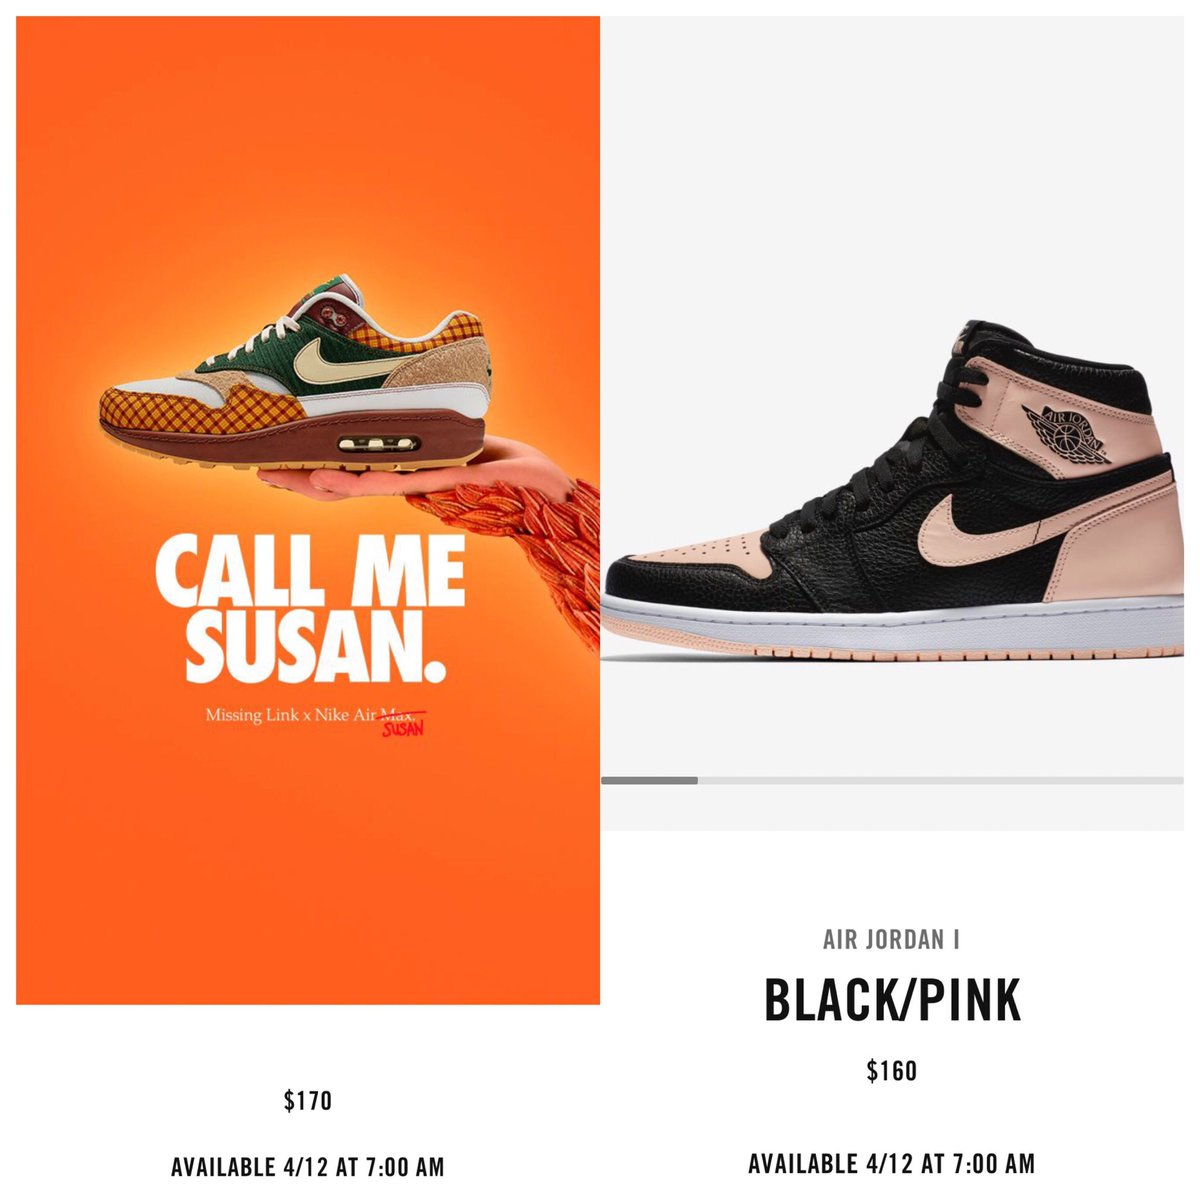 the best attitude 709cc e147d Release Update  Nike Air Max Susan  Missing Link  and the Jordan Retro 1   Black Pink  now releases April 12th via SNKRS AM Susan  https   bit.ly 2FRsBme J1 ...